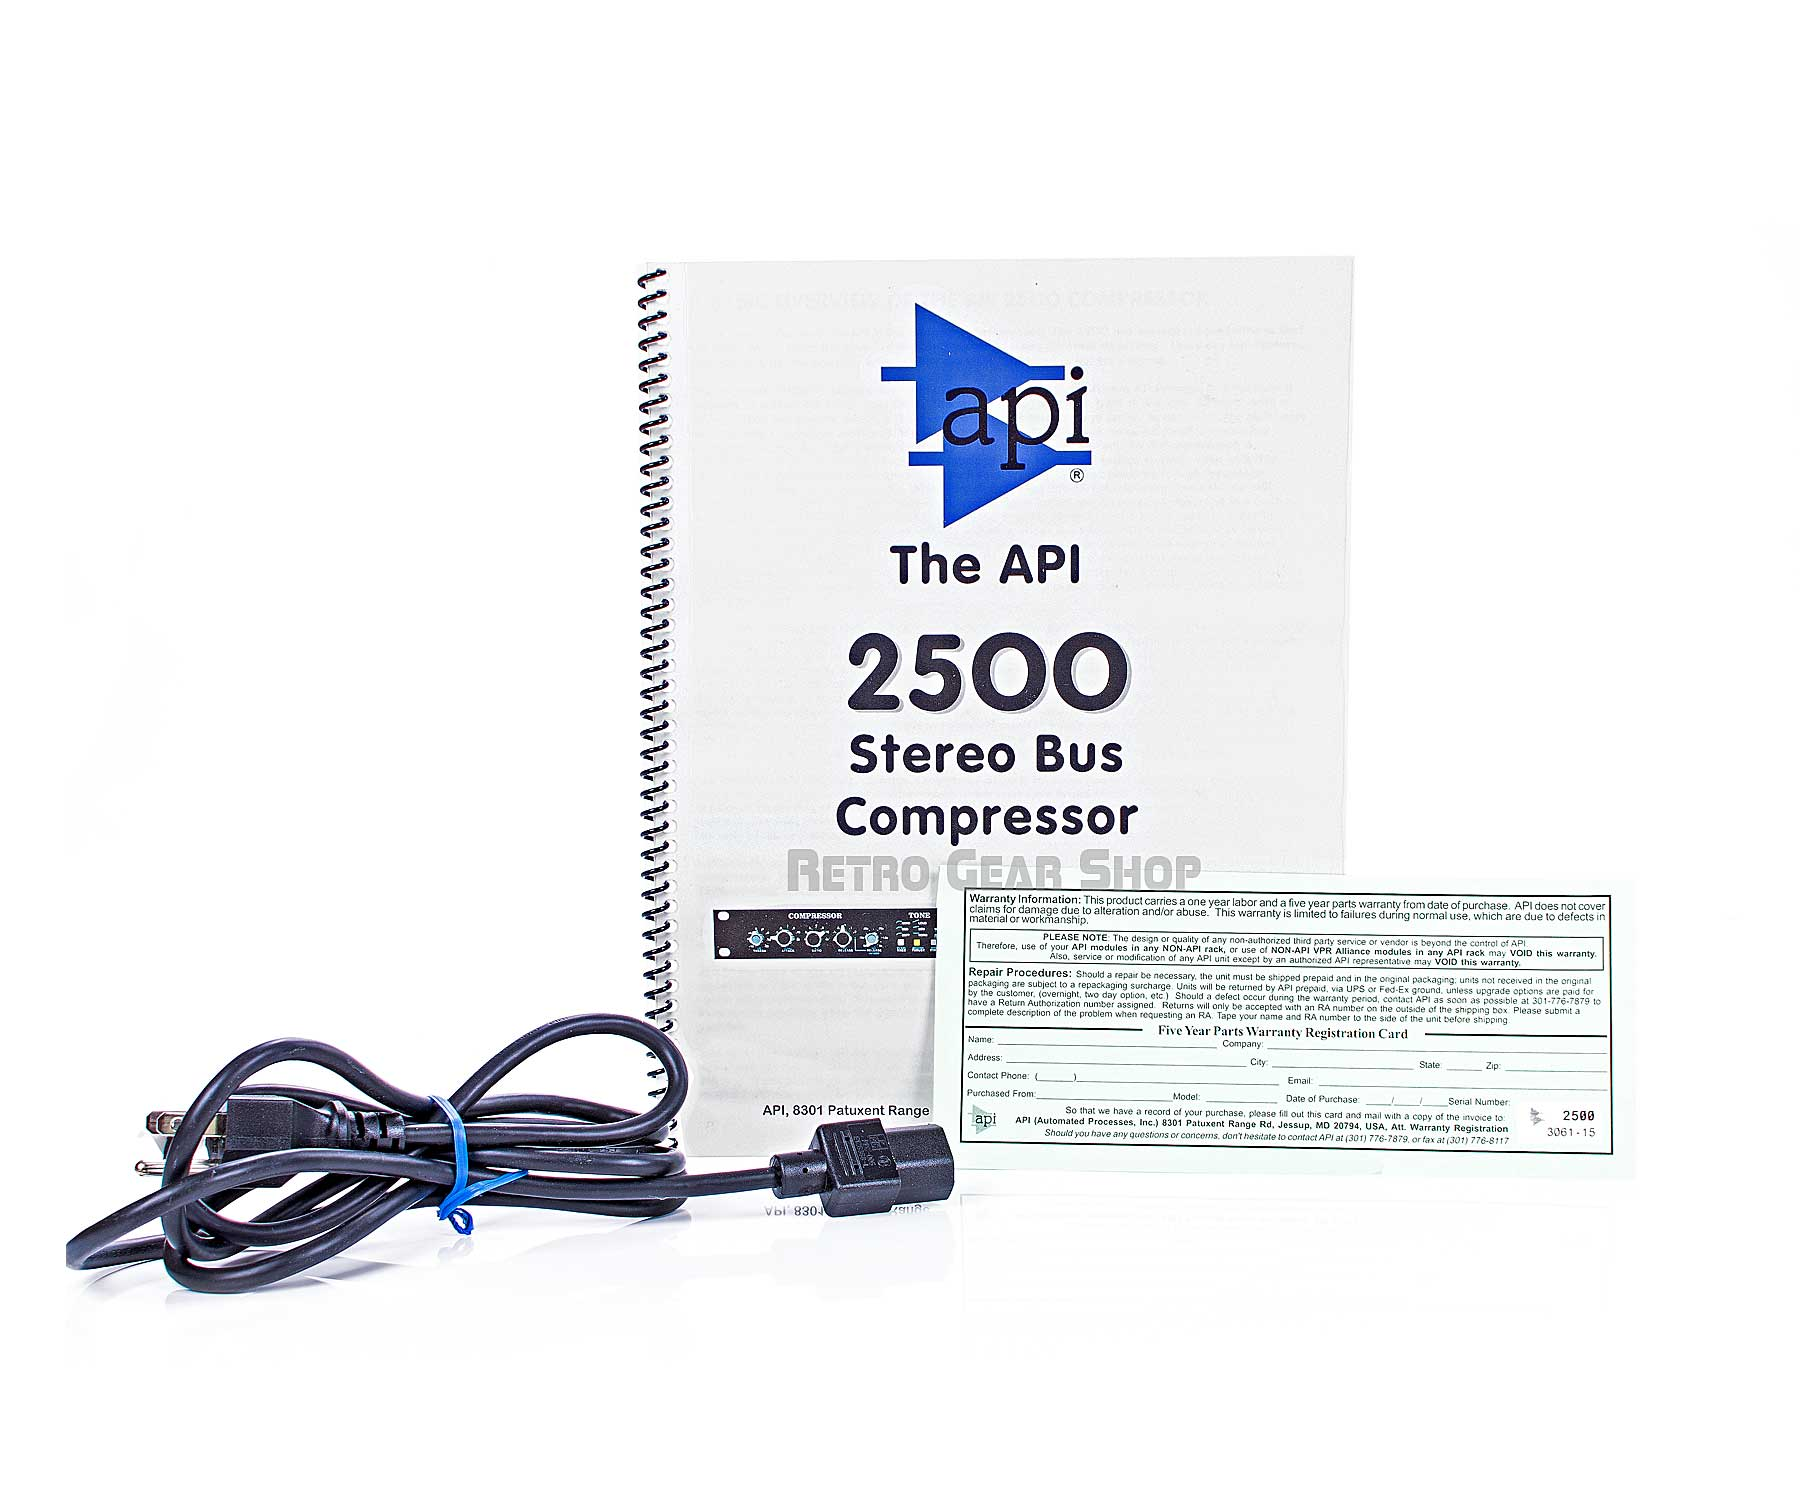 API 2500 Manual Power Cable